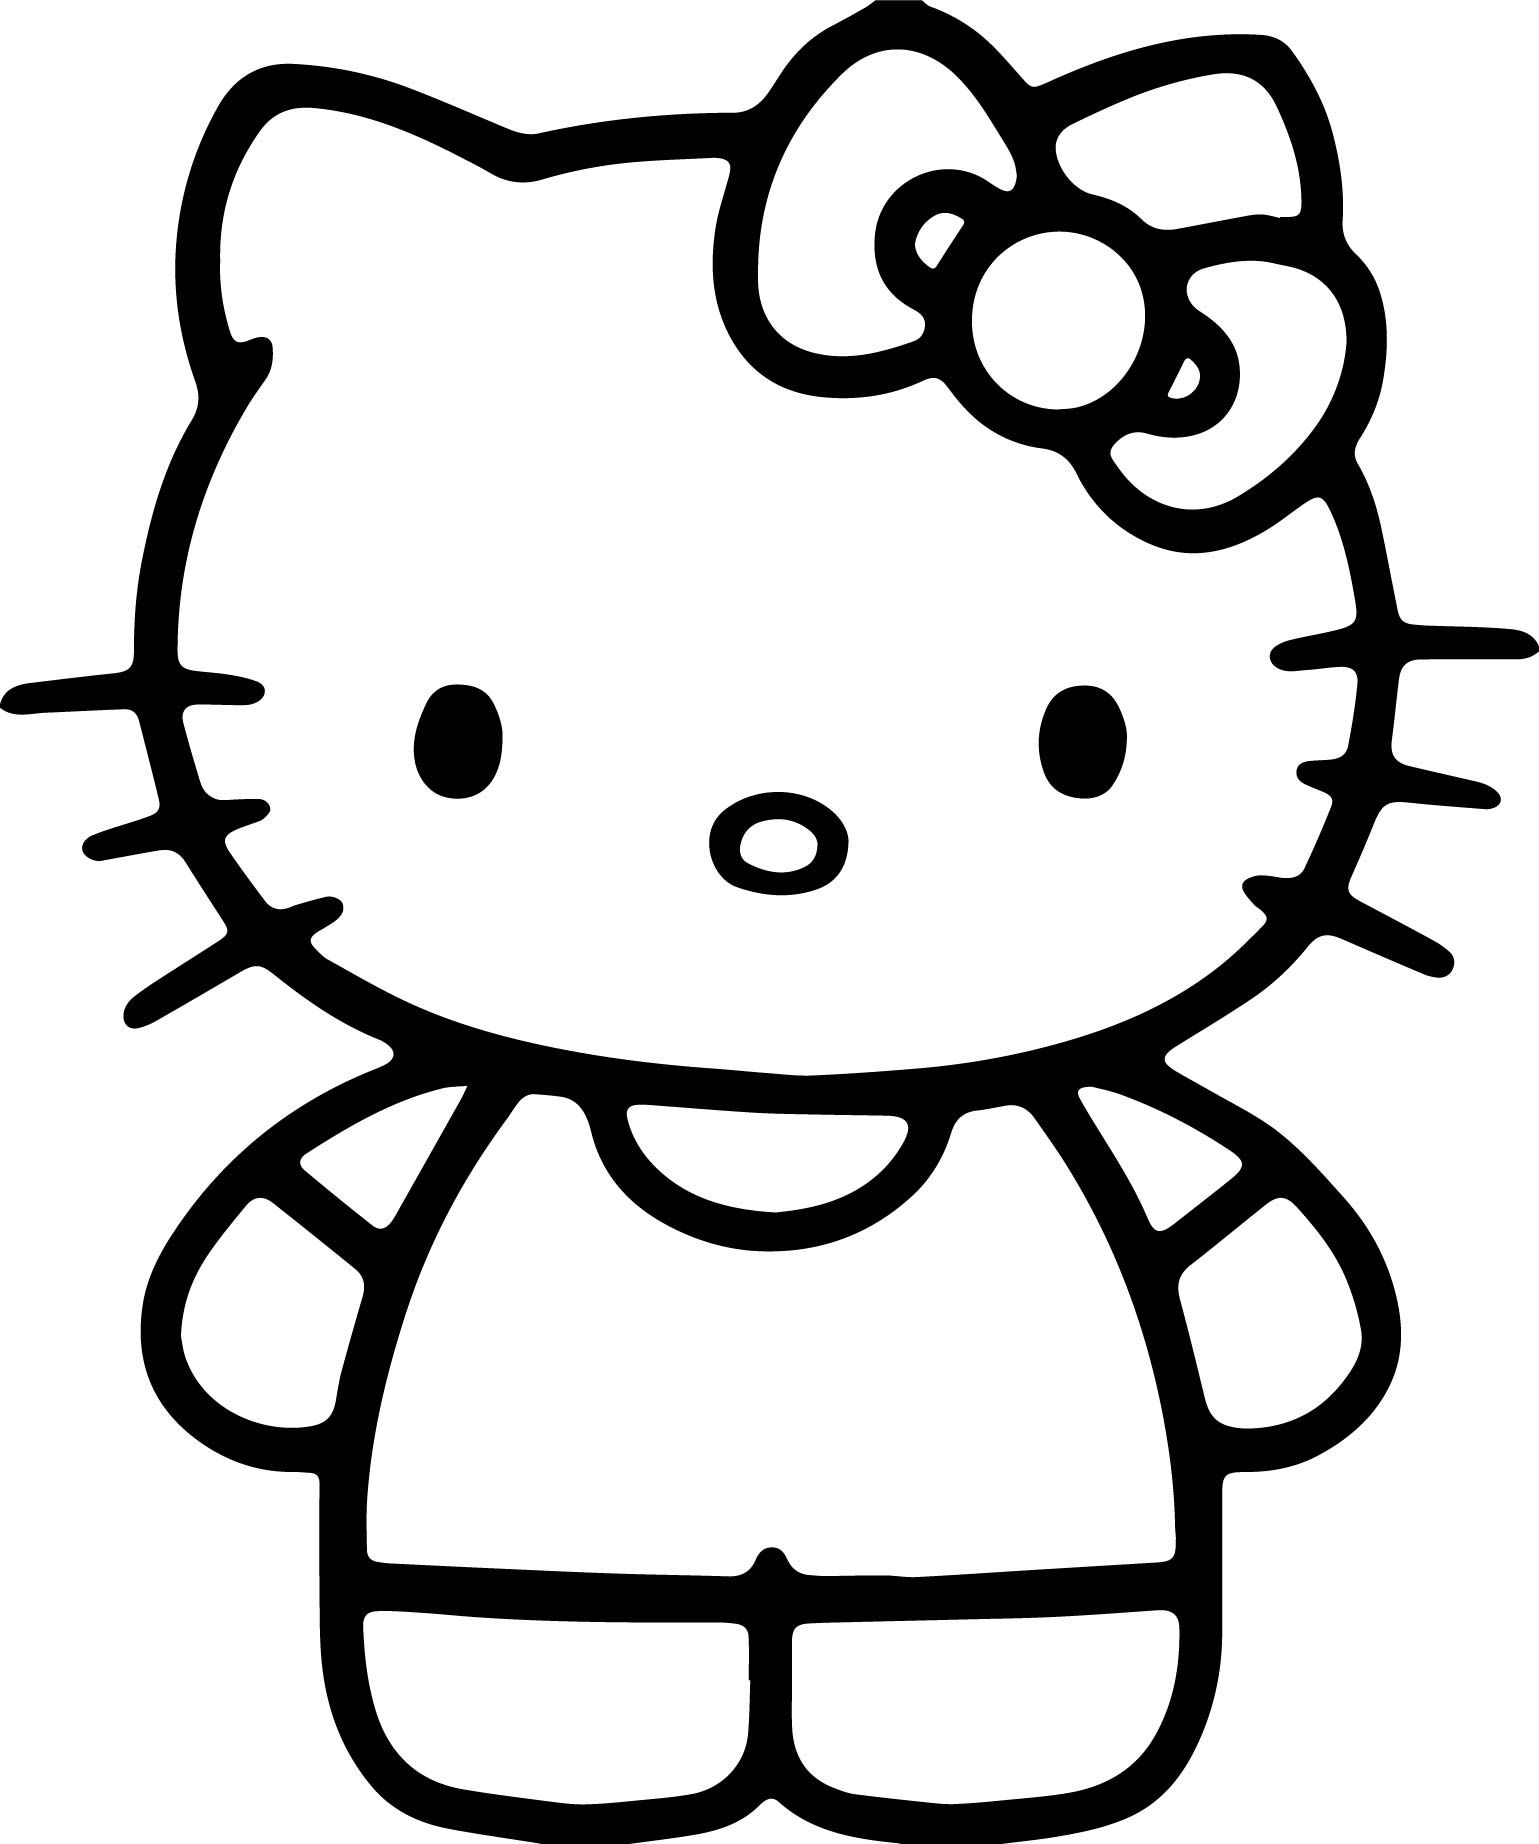 printable coloring sheets for 4 year olds number 4 preschool printables free worksheets and coloring 4 printable for sheets year olds